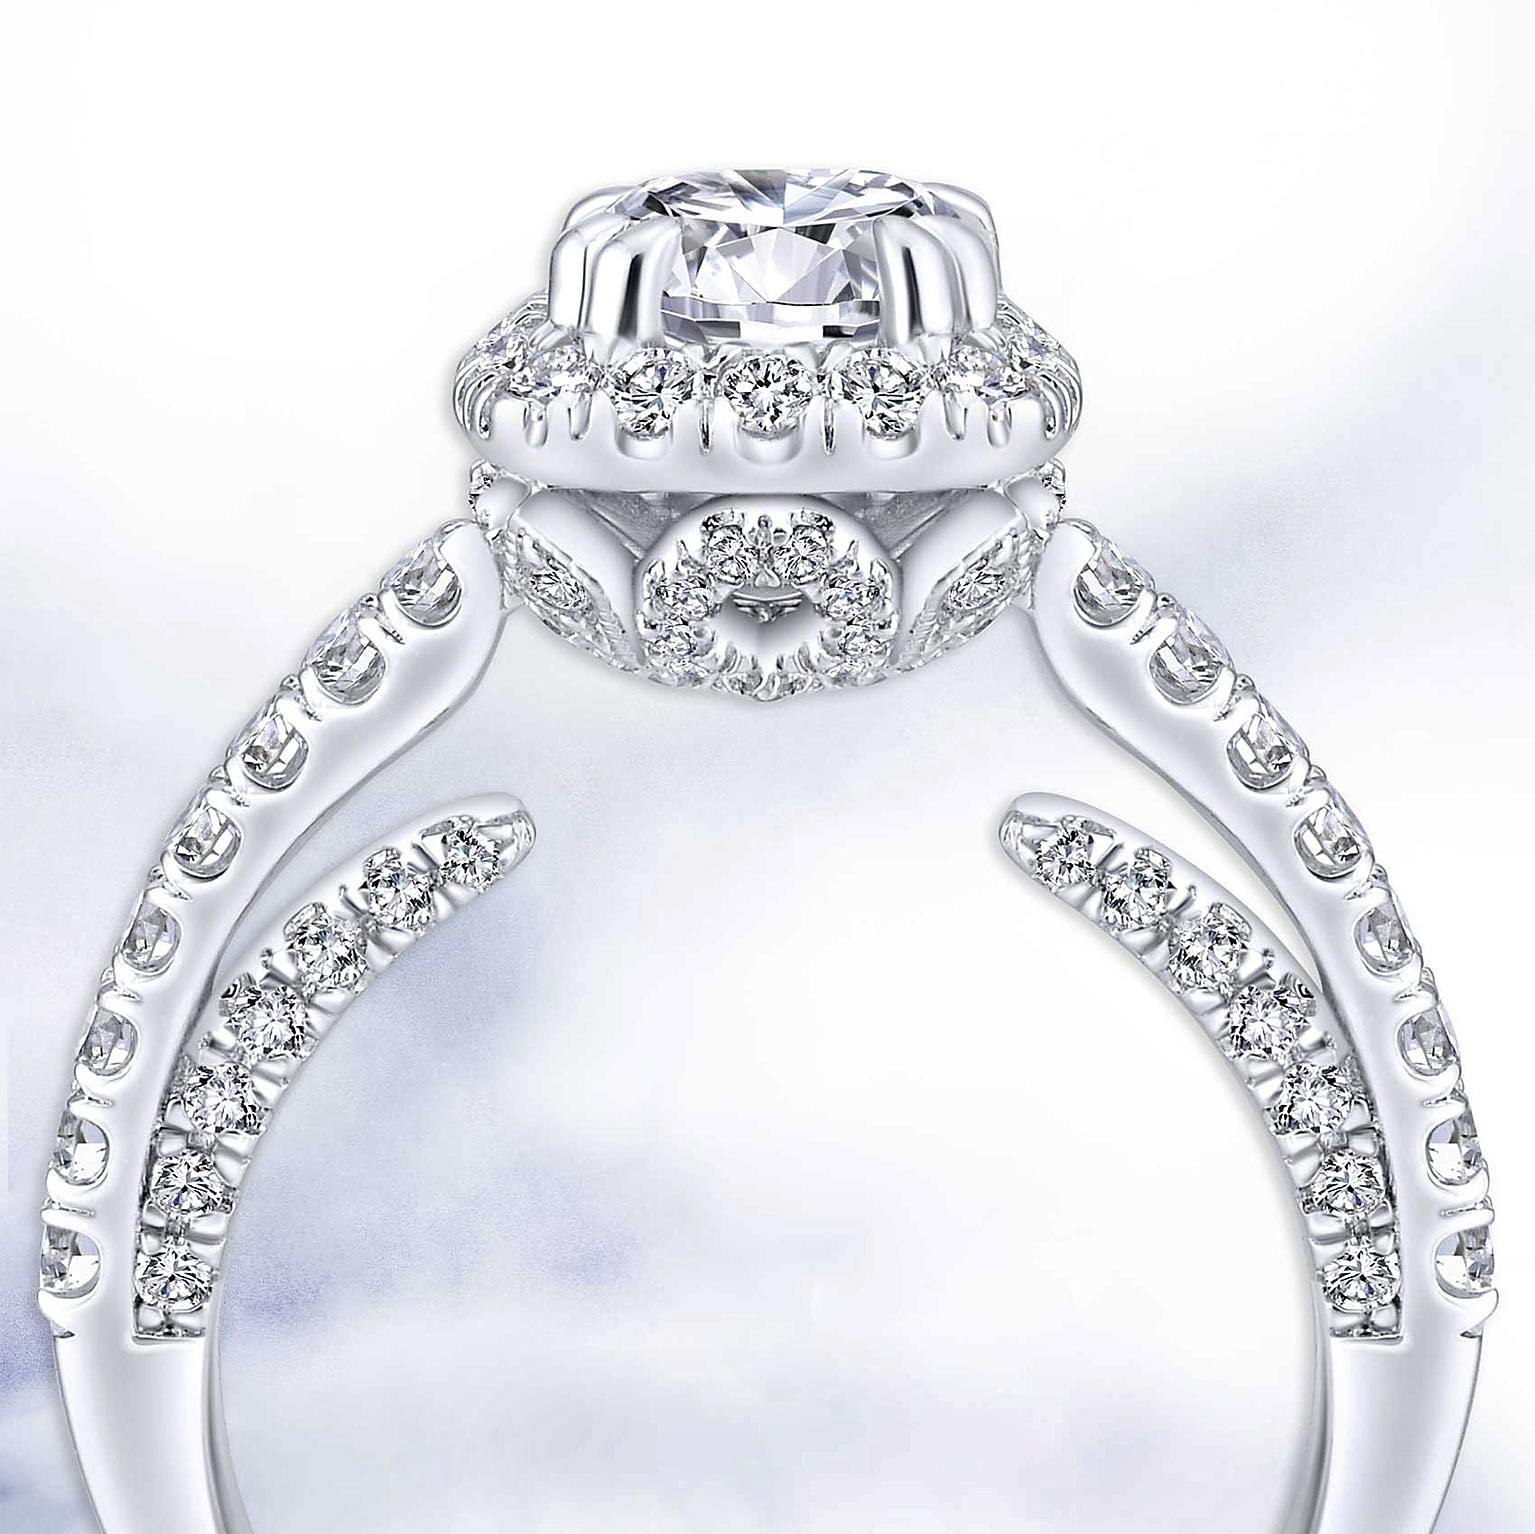 dollars main weddings rings dollar under gallery gold wang white vera glamour in ring diamond engagement